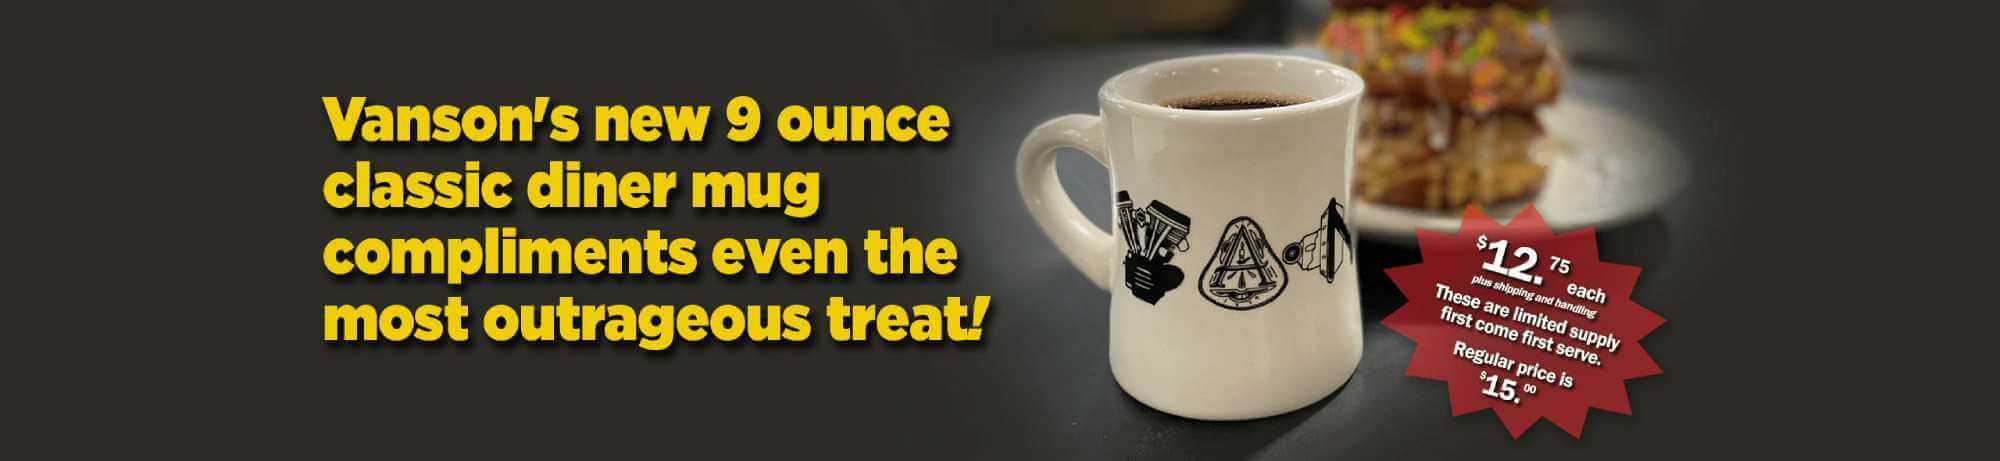 Vanson's new 9 ounce classic diner mug compliments even the most outrageous treat!